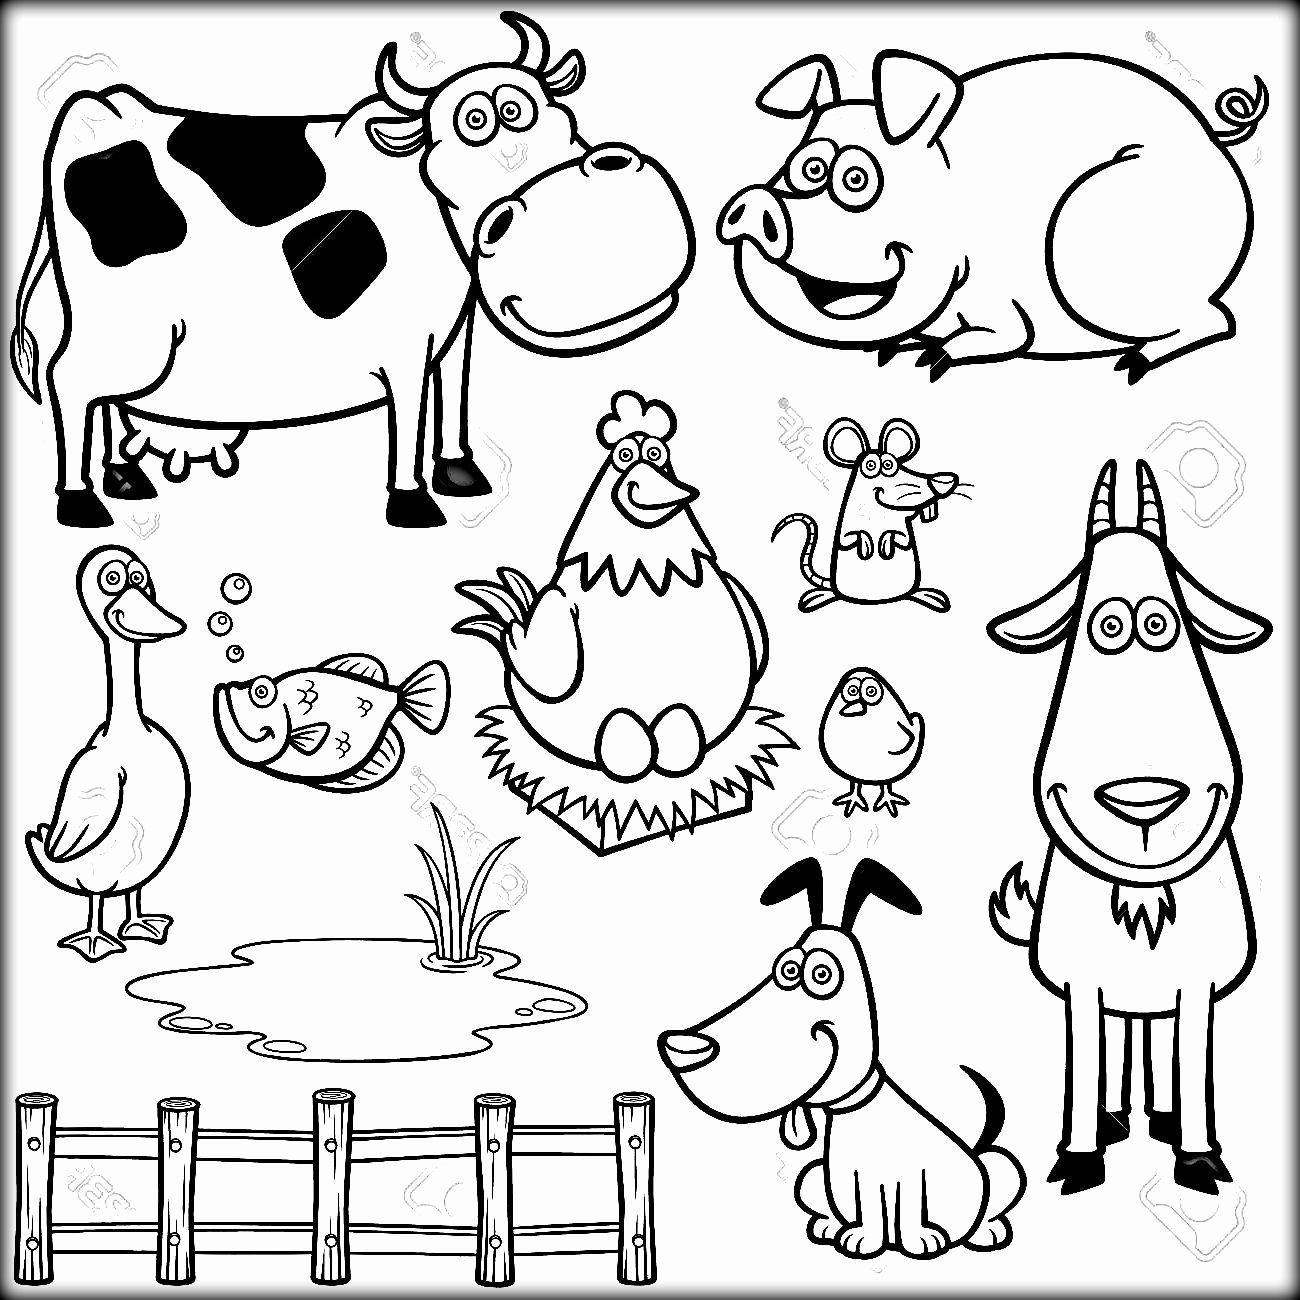 Farm Animals Coloring Page Beautiful 44 Farm Animal Coloring Pages For Preschoolers Farm Animal Coloring Pages Animal Coloring Pages Zoo Animal Coloring Pages